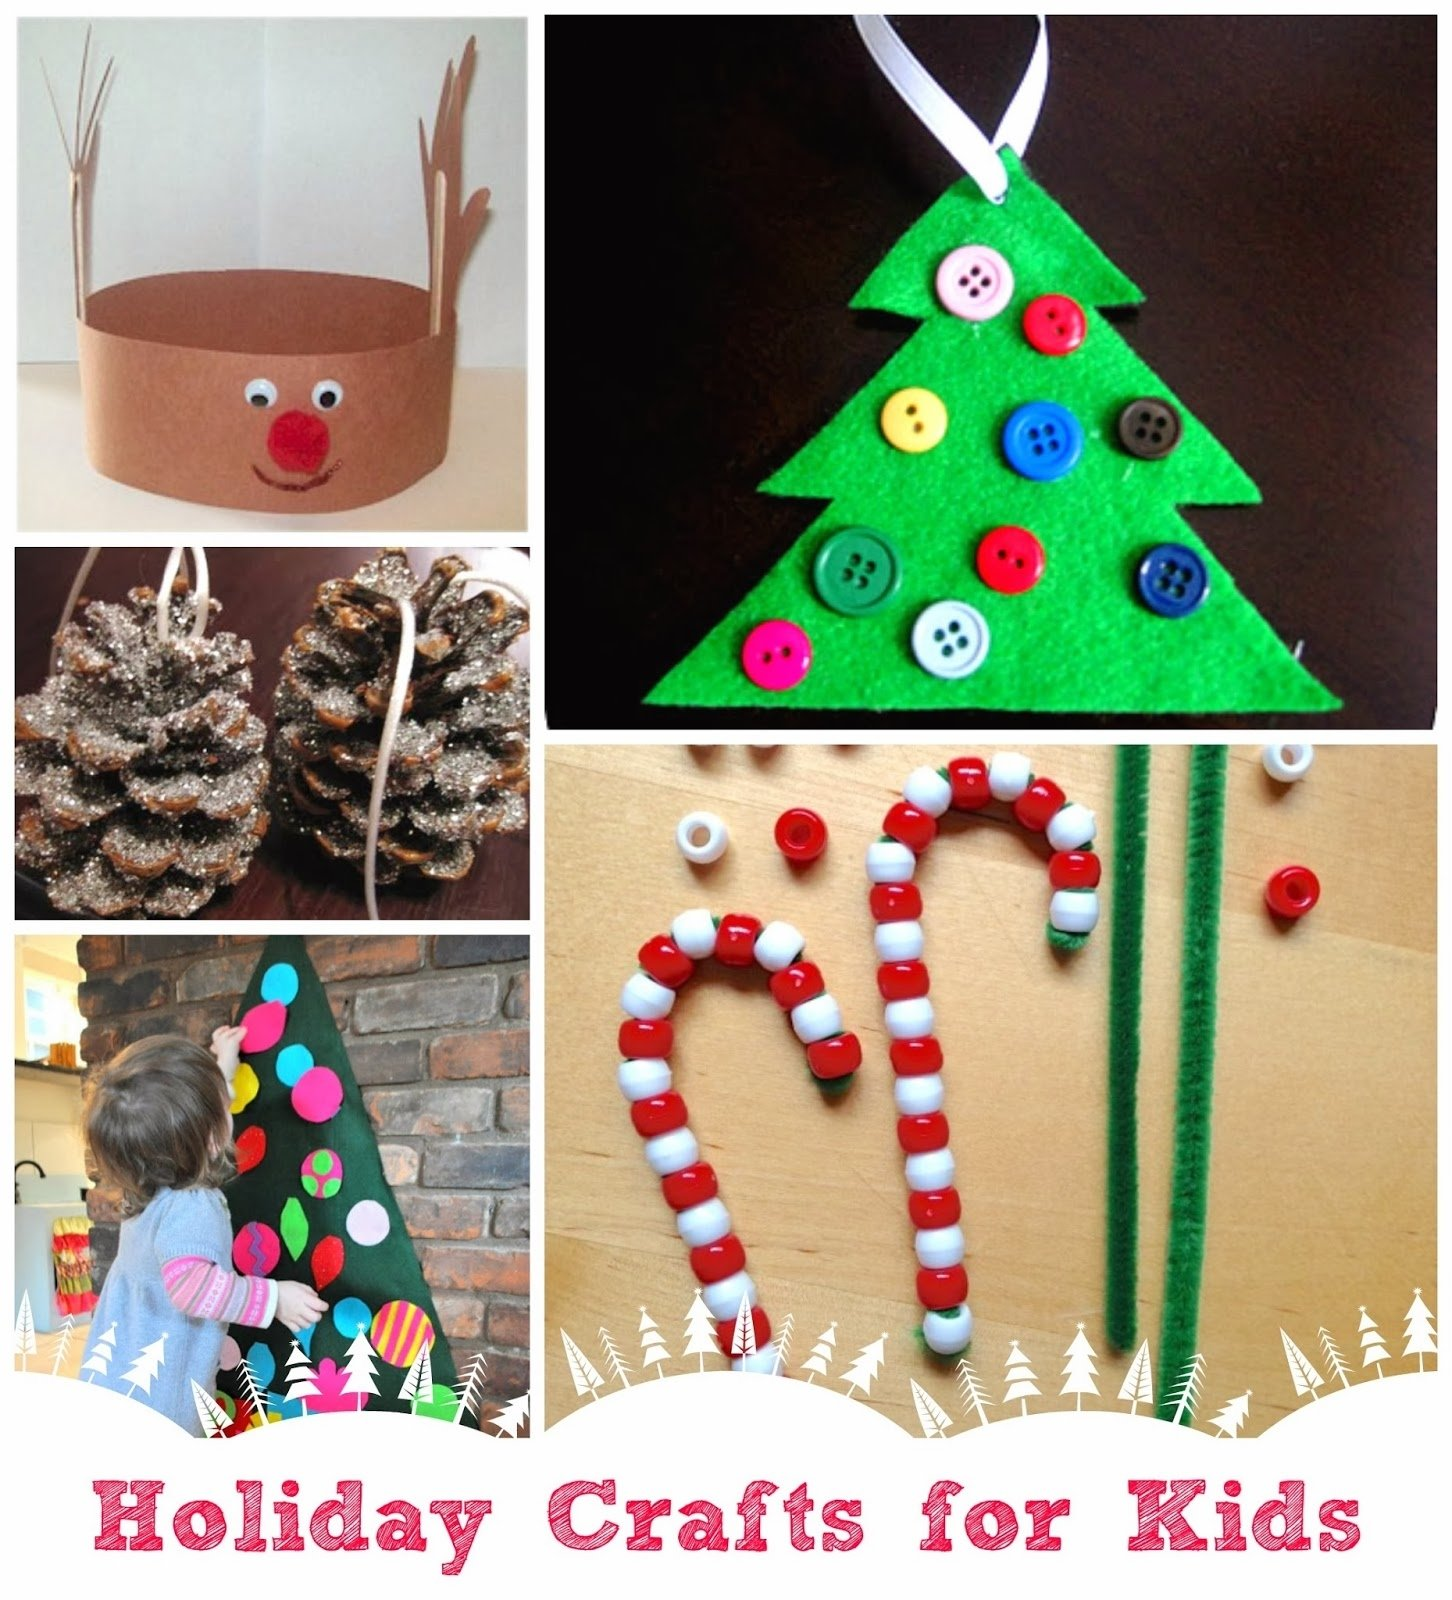 10 Gorgeous Christmas Ornament Craft Ideas For Kids parent talk matters blog holiday craft ideas for kids 2021